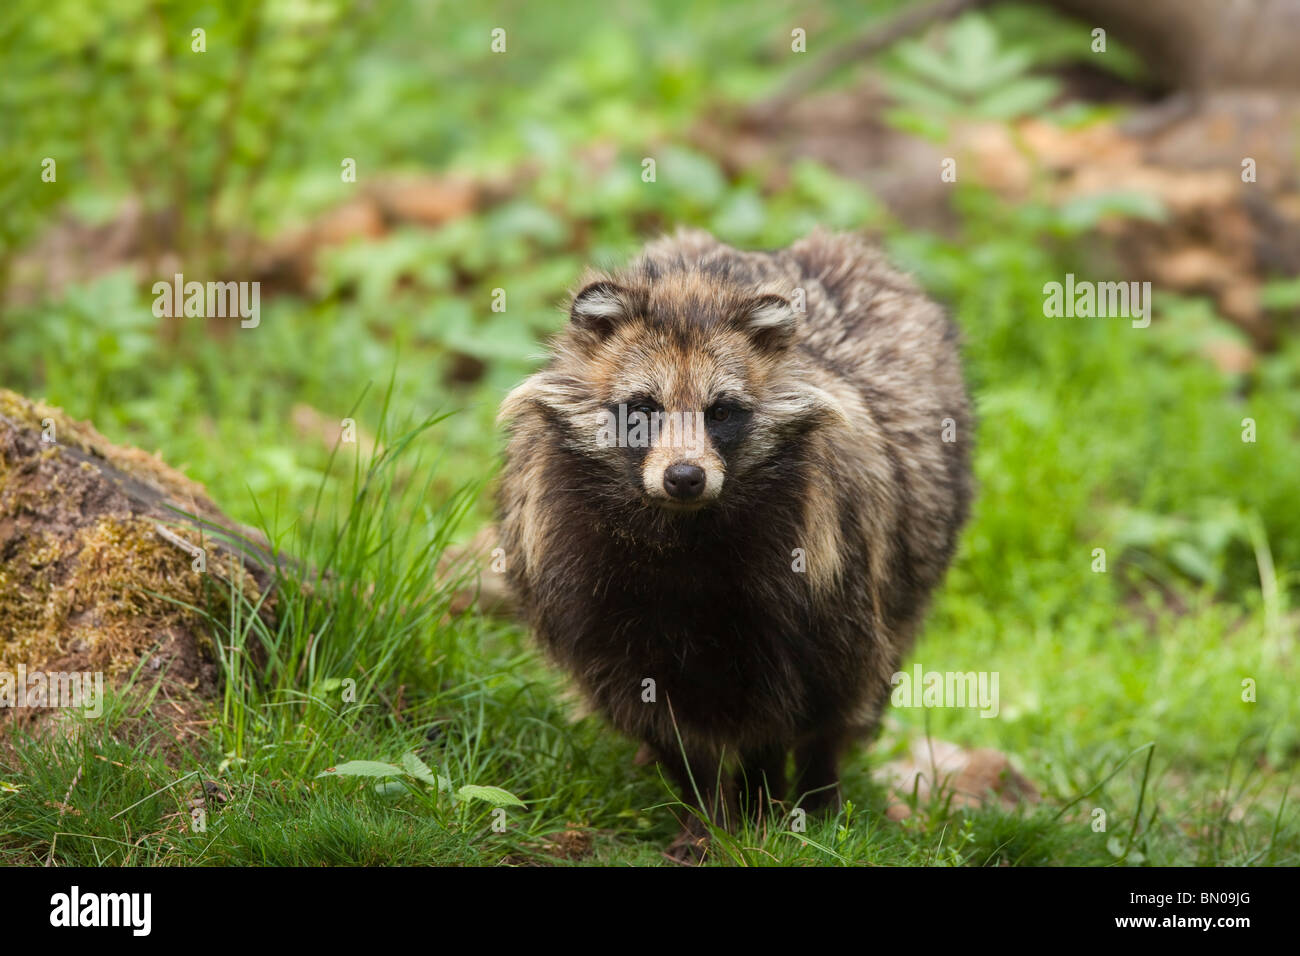 Racoon Dog Nyctereutes Procyonoides Standing In A Forest